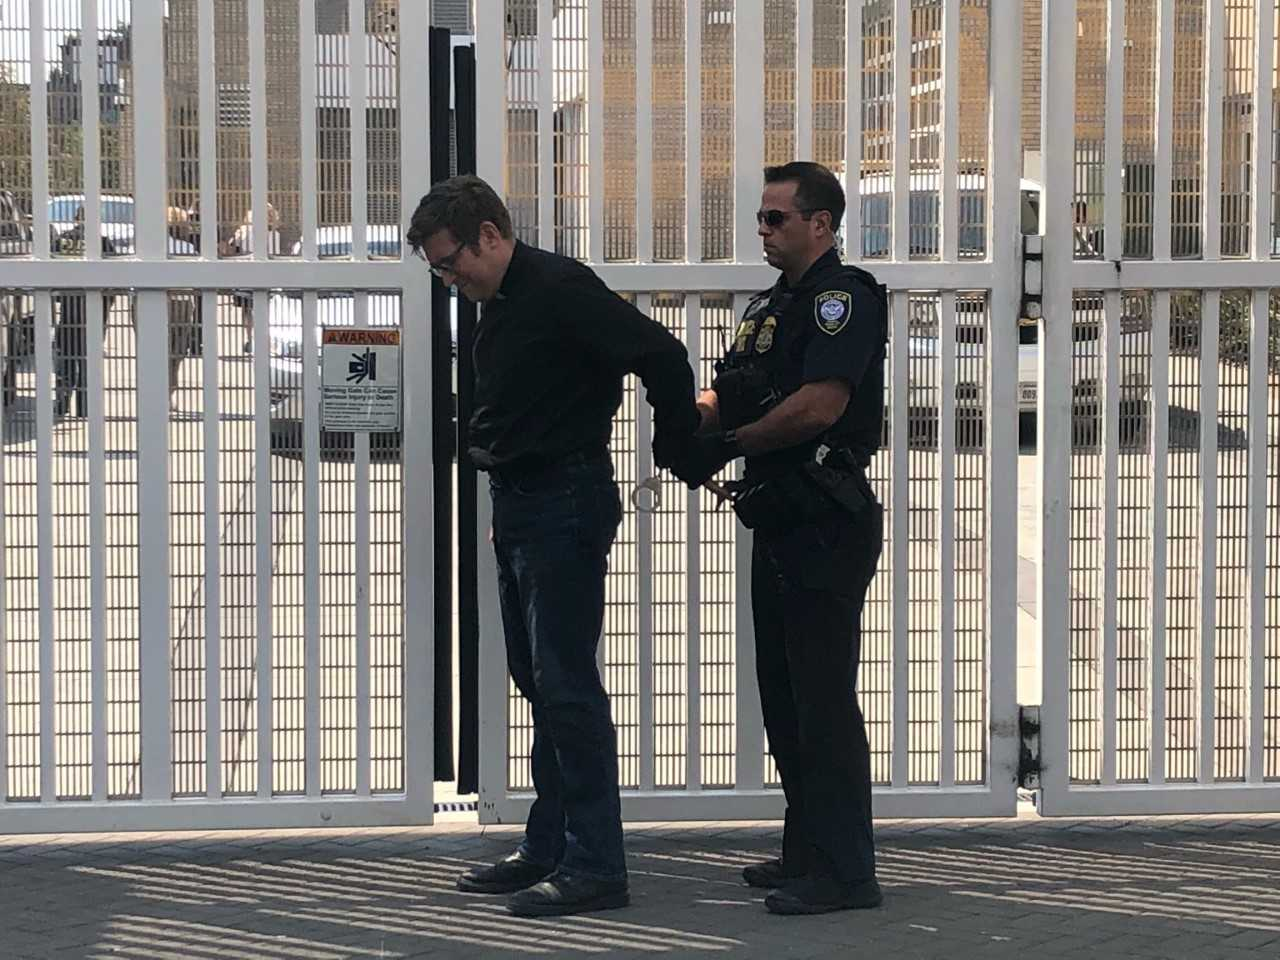 A clergyman was arrested at an ICE protest in SW Portland, August 7 2018. (ACLU)